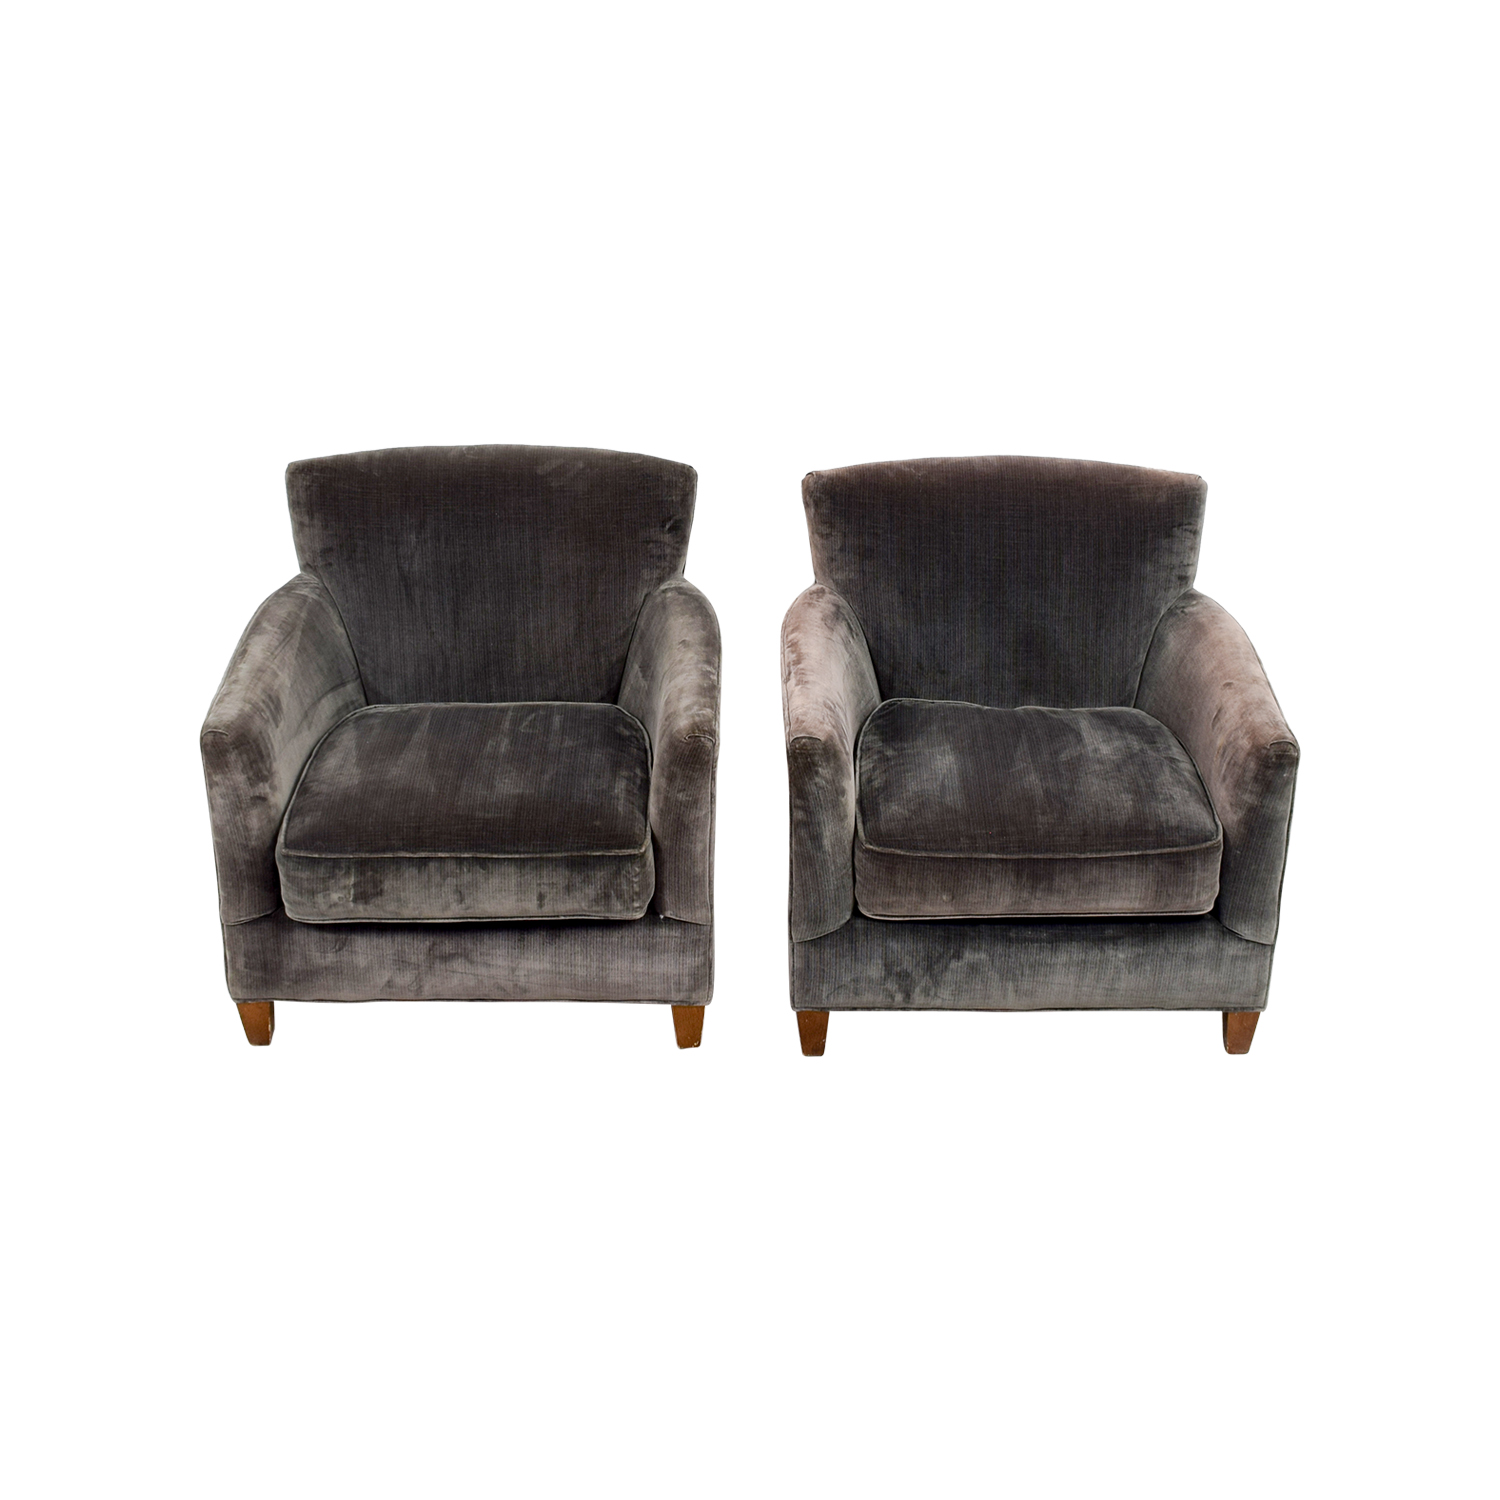 66% OFF Lee Lee Dark Green Velvet Accent Chairs Chairs